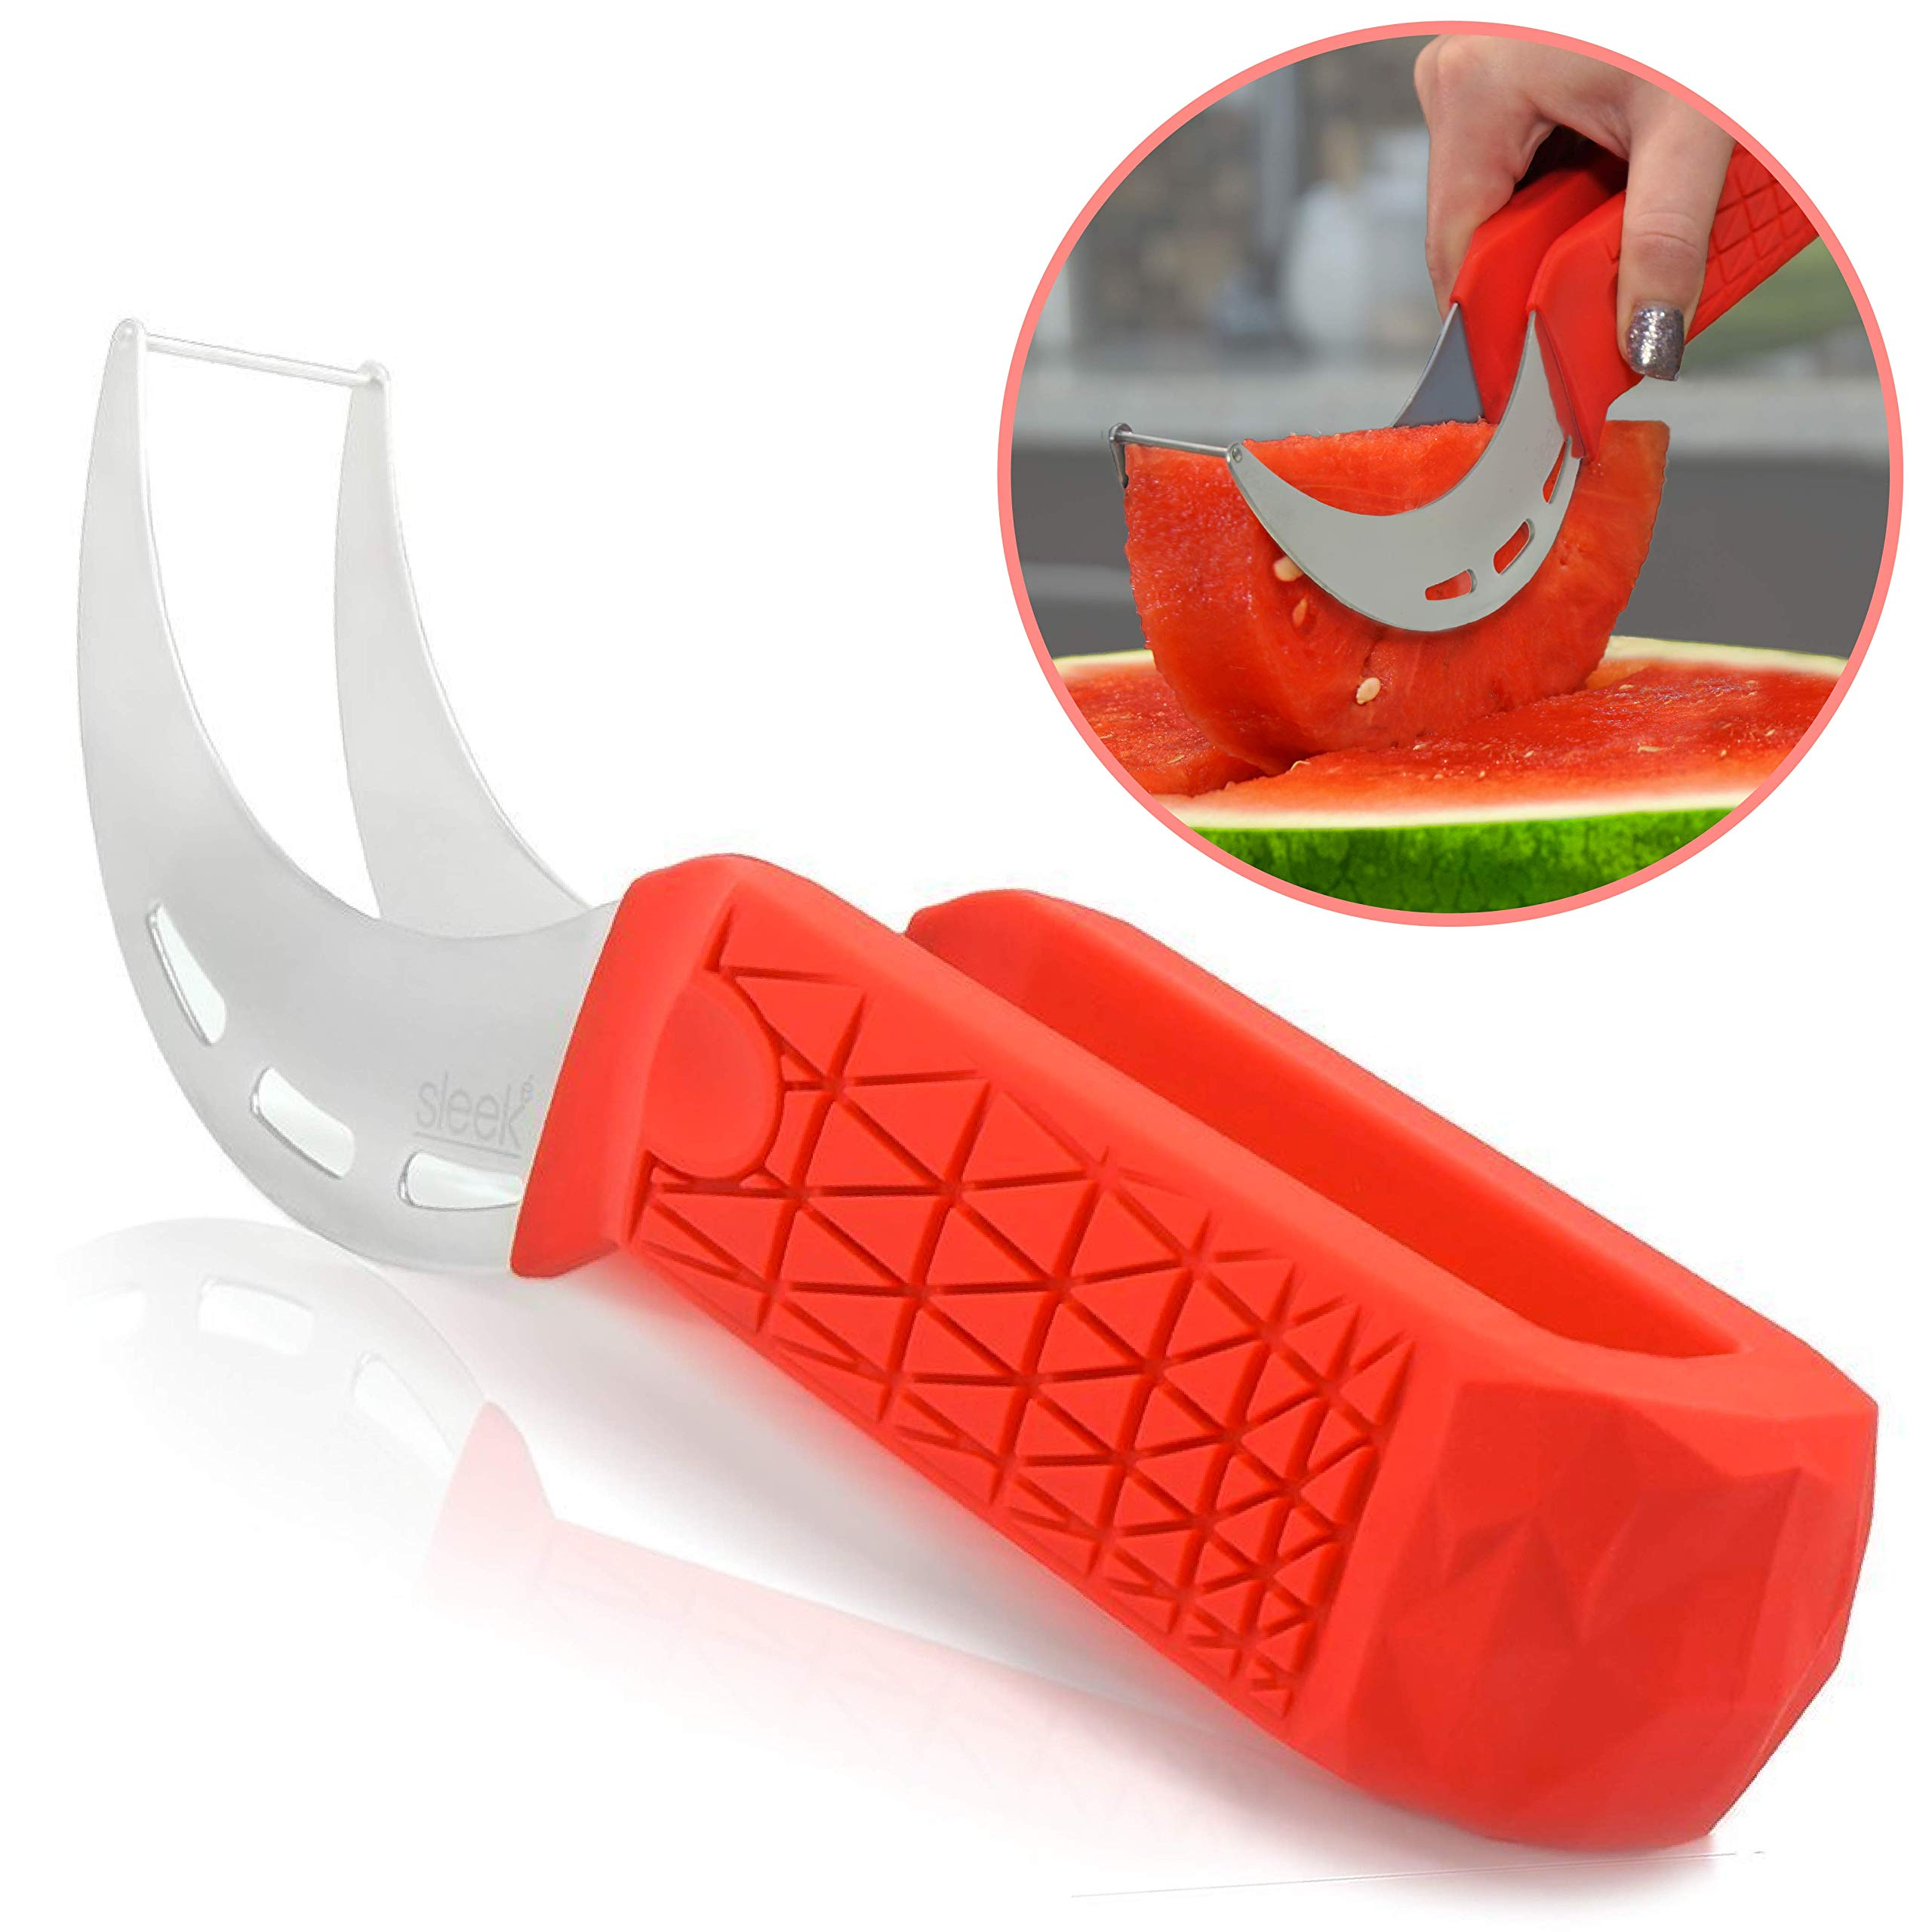 Watermelon Slicer & Cutter by Sleeké - New Extended Silicone Cushioned Handle Made to Slice and Serve with Ease - Stainless Steel - No Mess, Less Stress by Sleeké